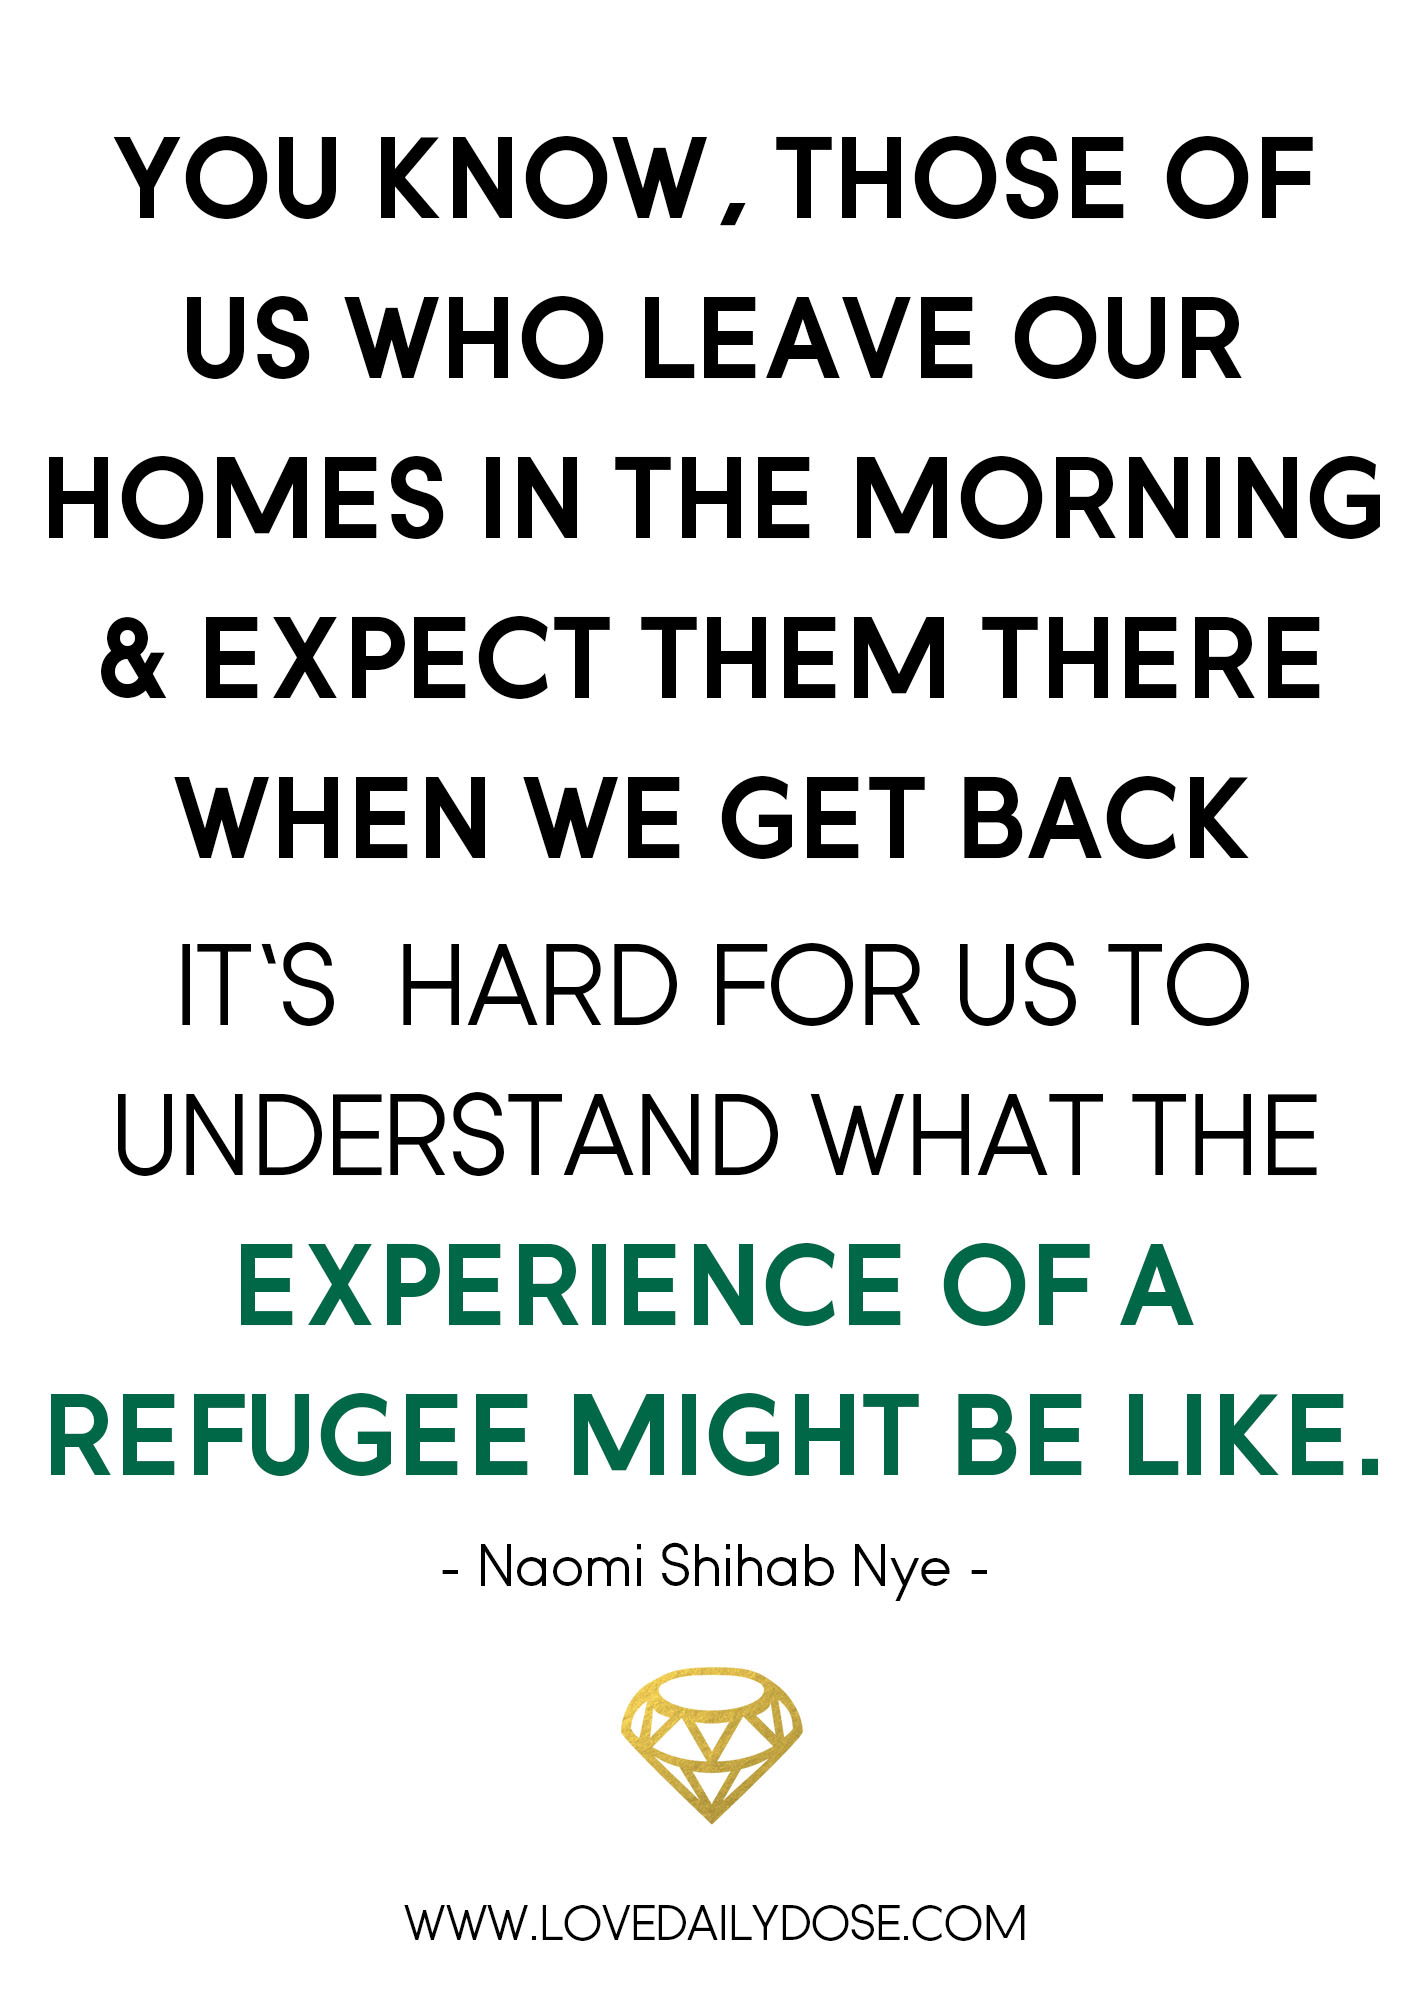 Heart to Heart: #refugeeswelcome | Love Daily Dose